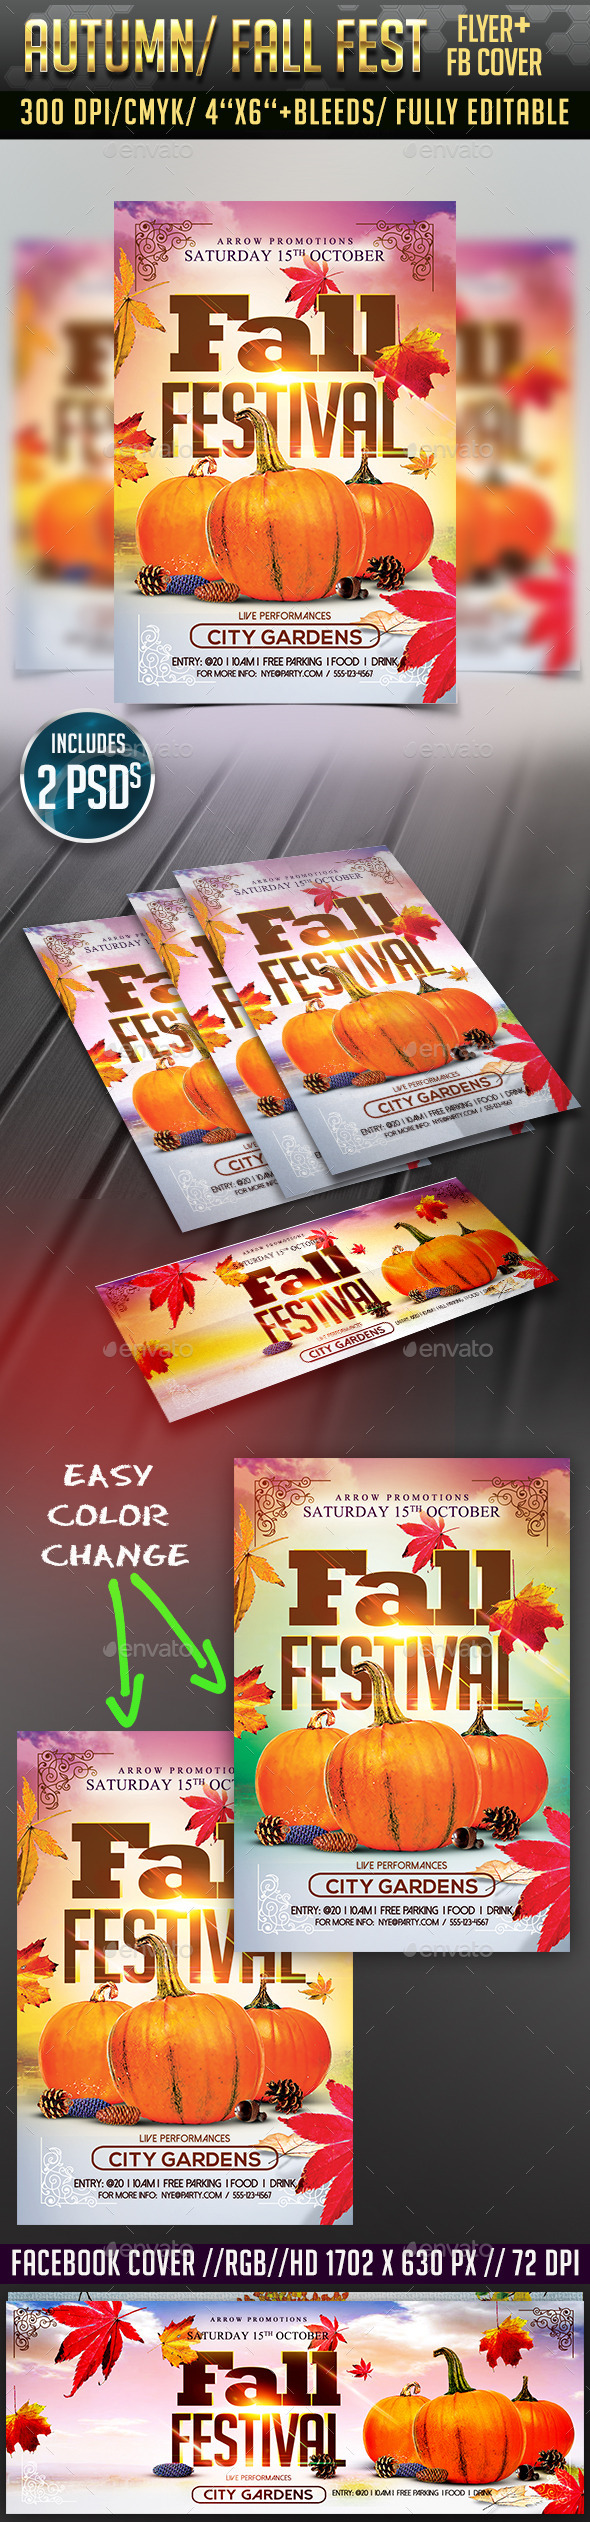 Autumn/ Fall Festival Flyer + Facebook Cover - Clubs & Parties Events